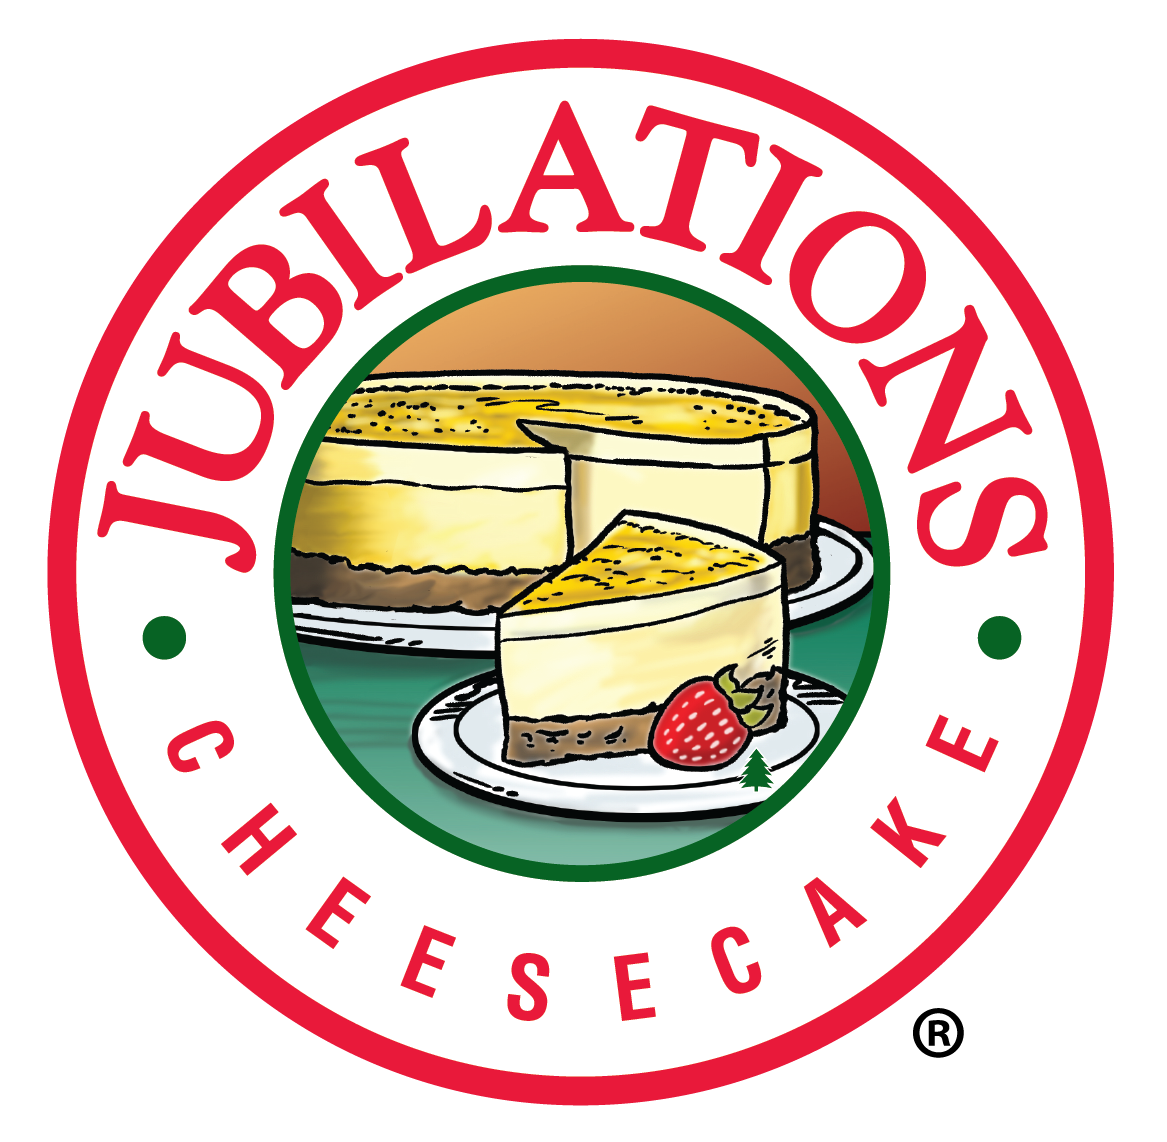 Jubilations Cheesecake